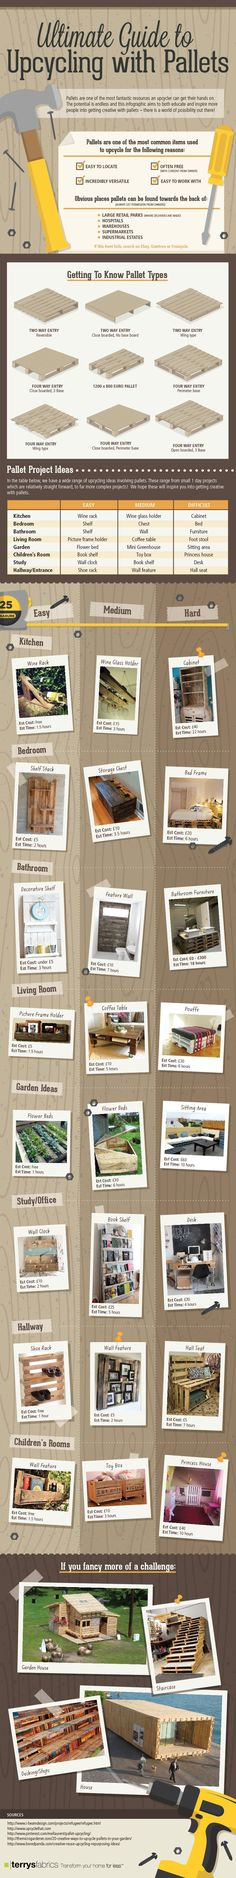 Ultimate Guide To Upcycling With Pallets Infographic